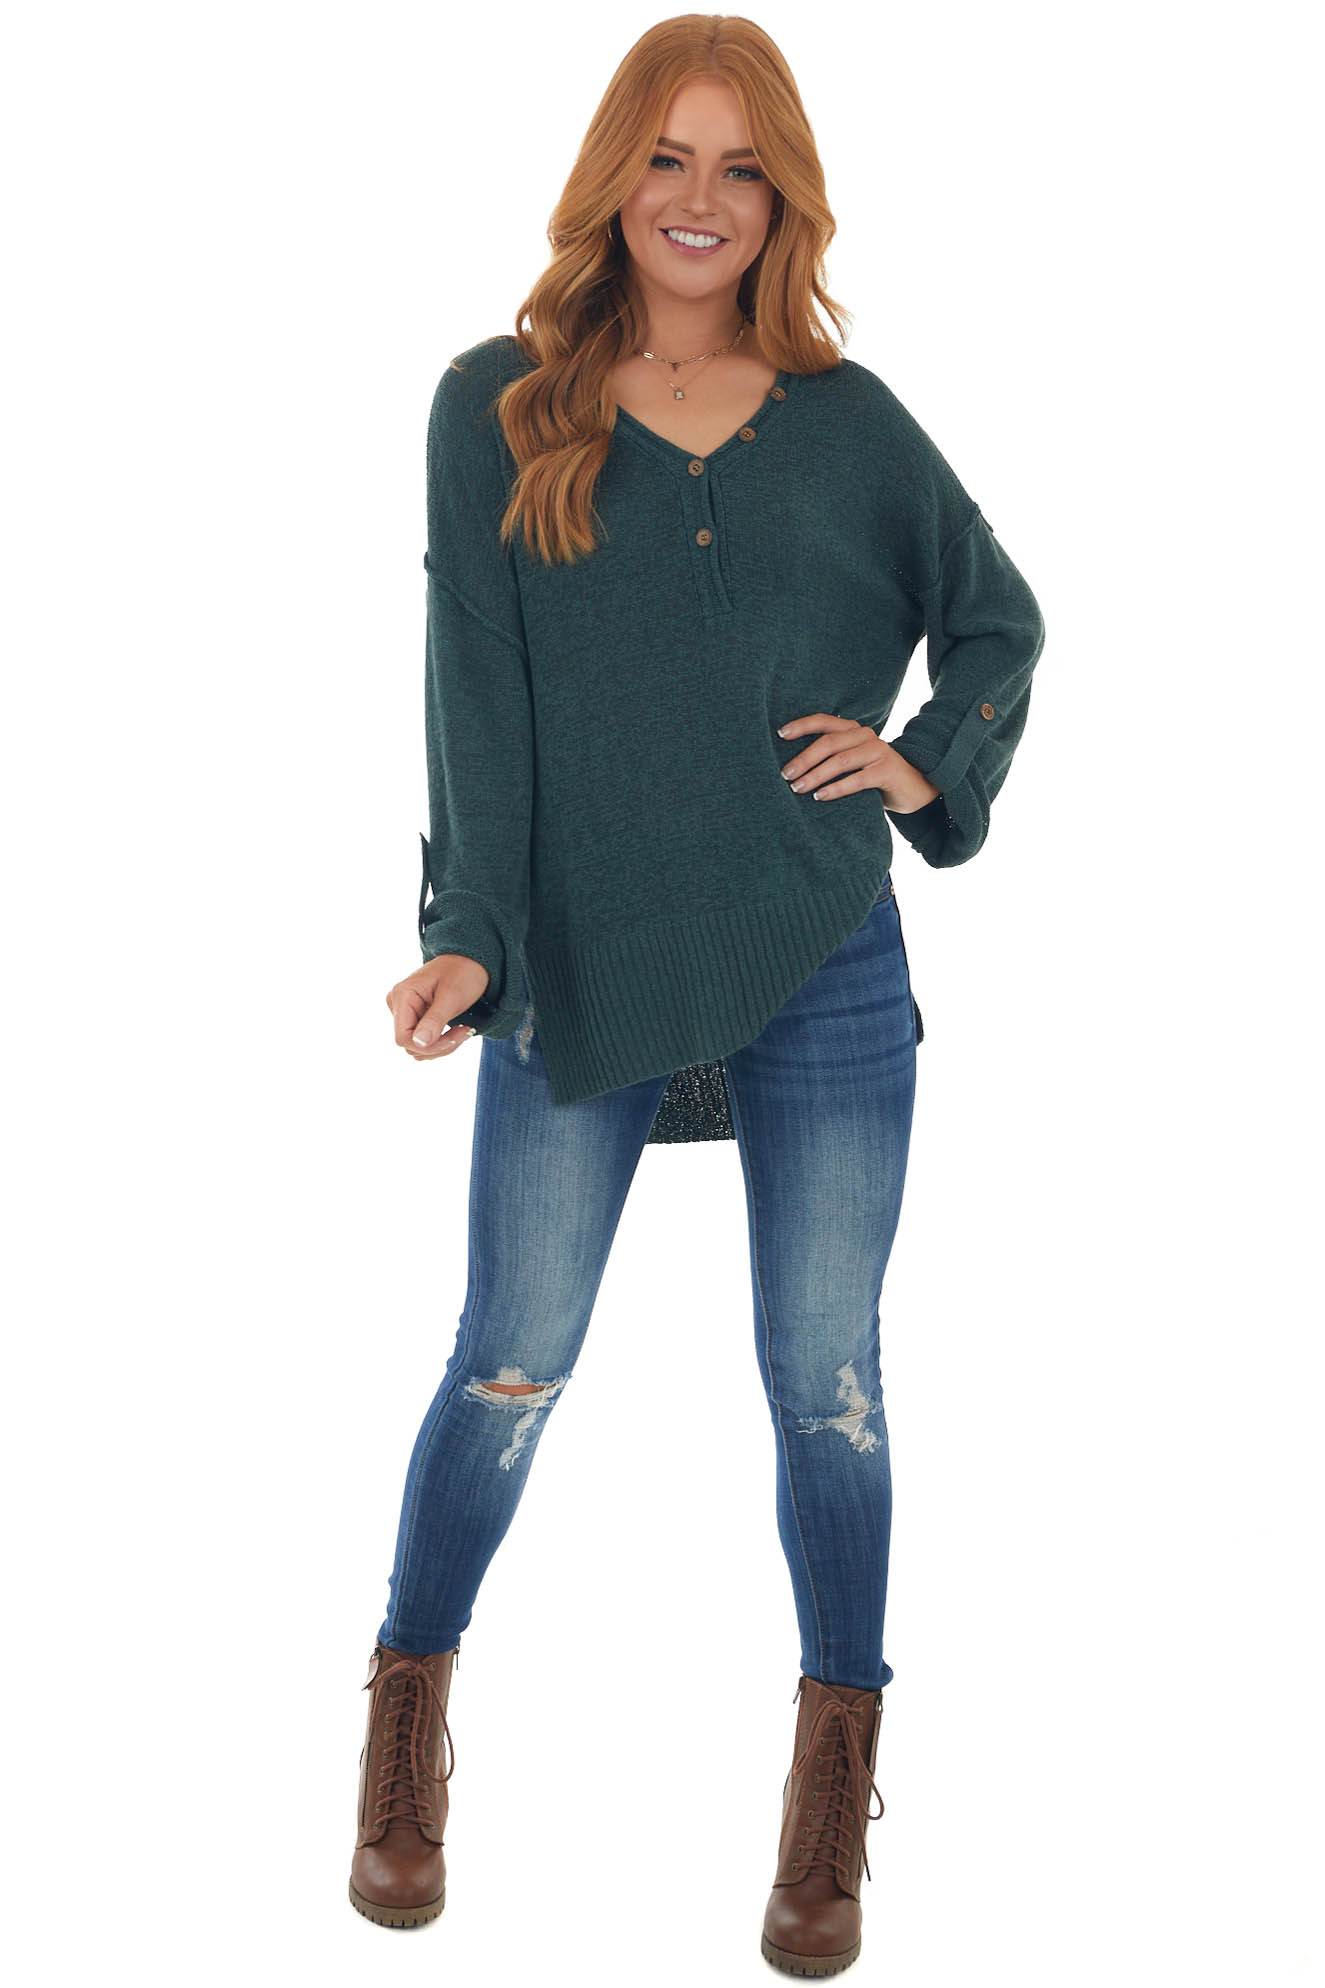 Pine Button Up Rolled Cuff Loose Knit Sweater